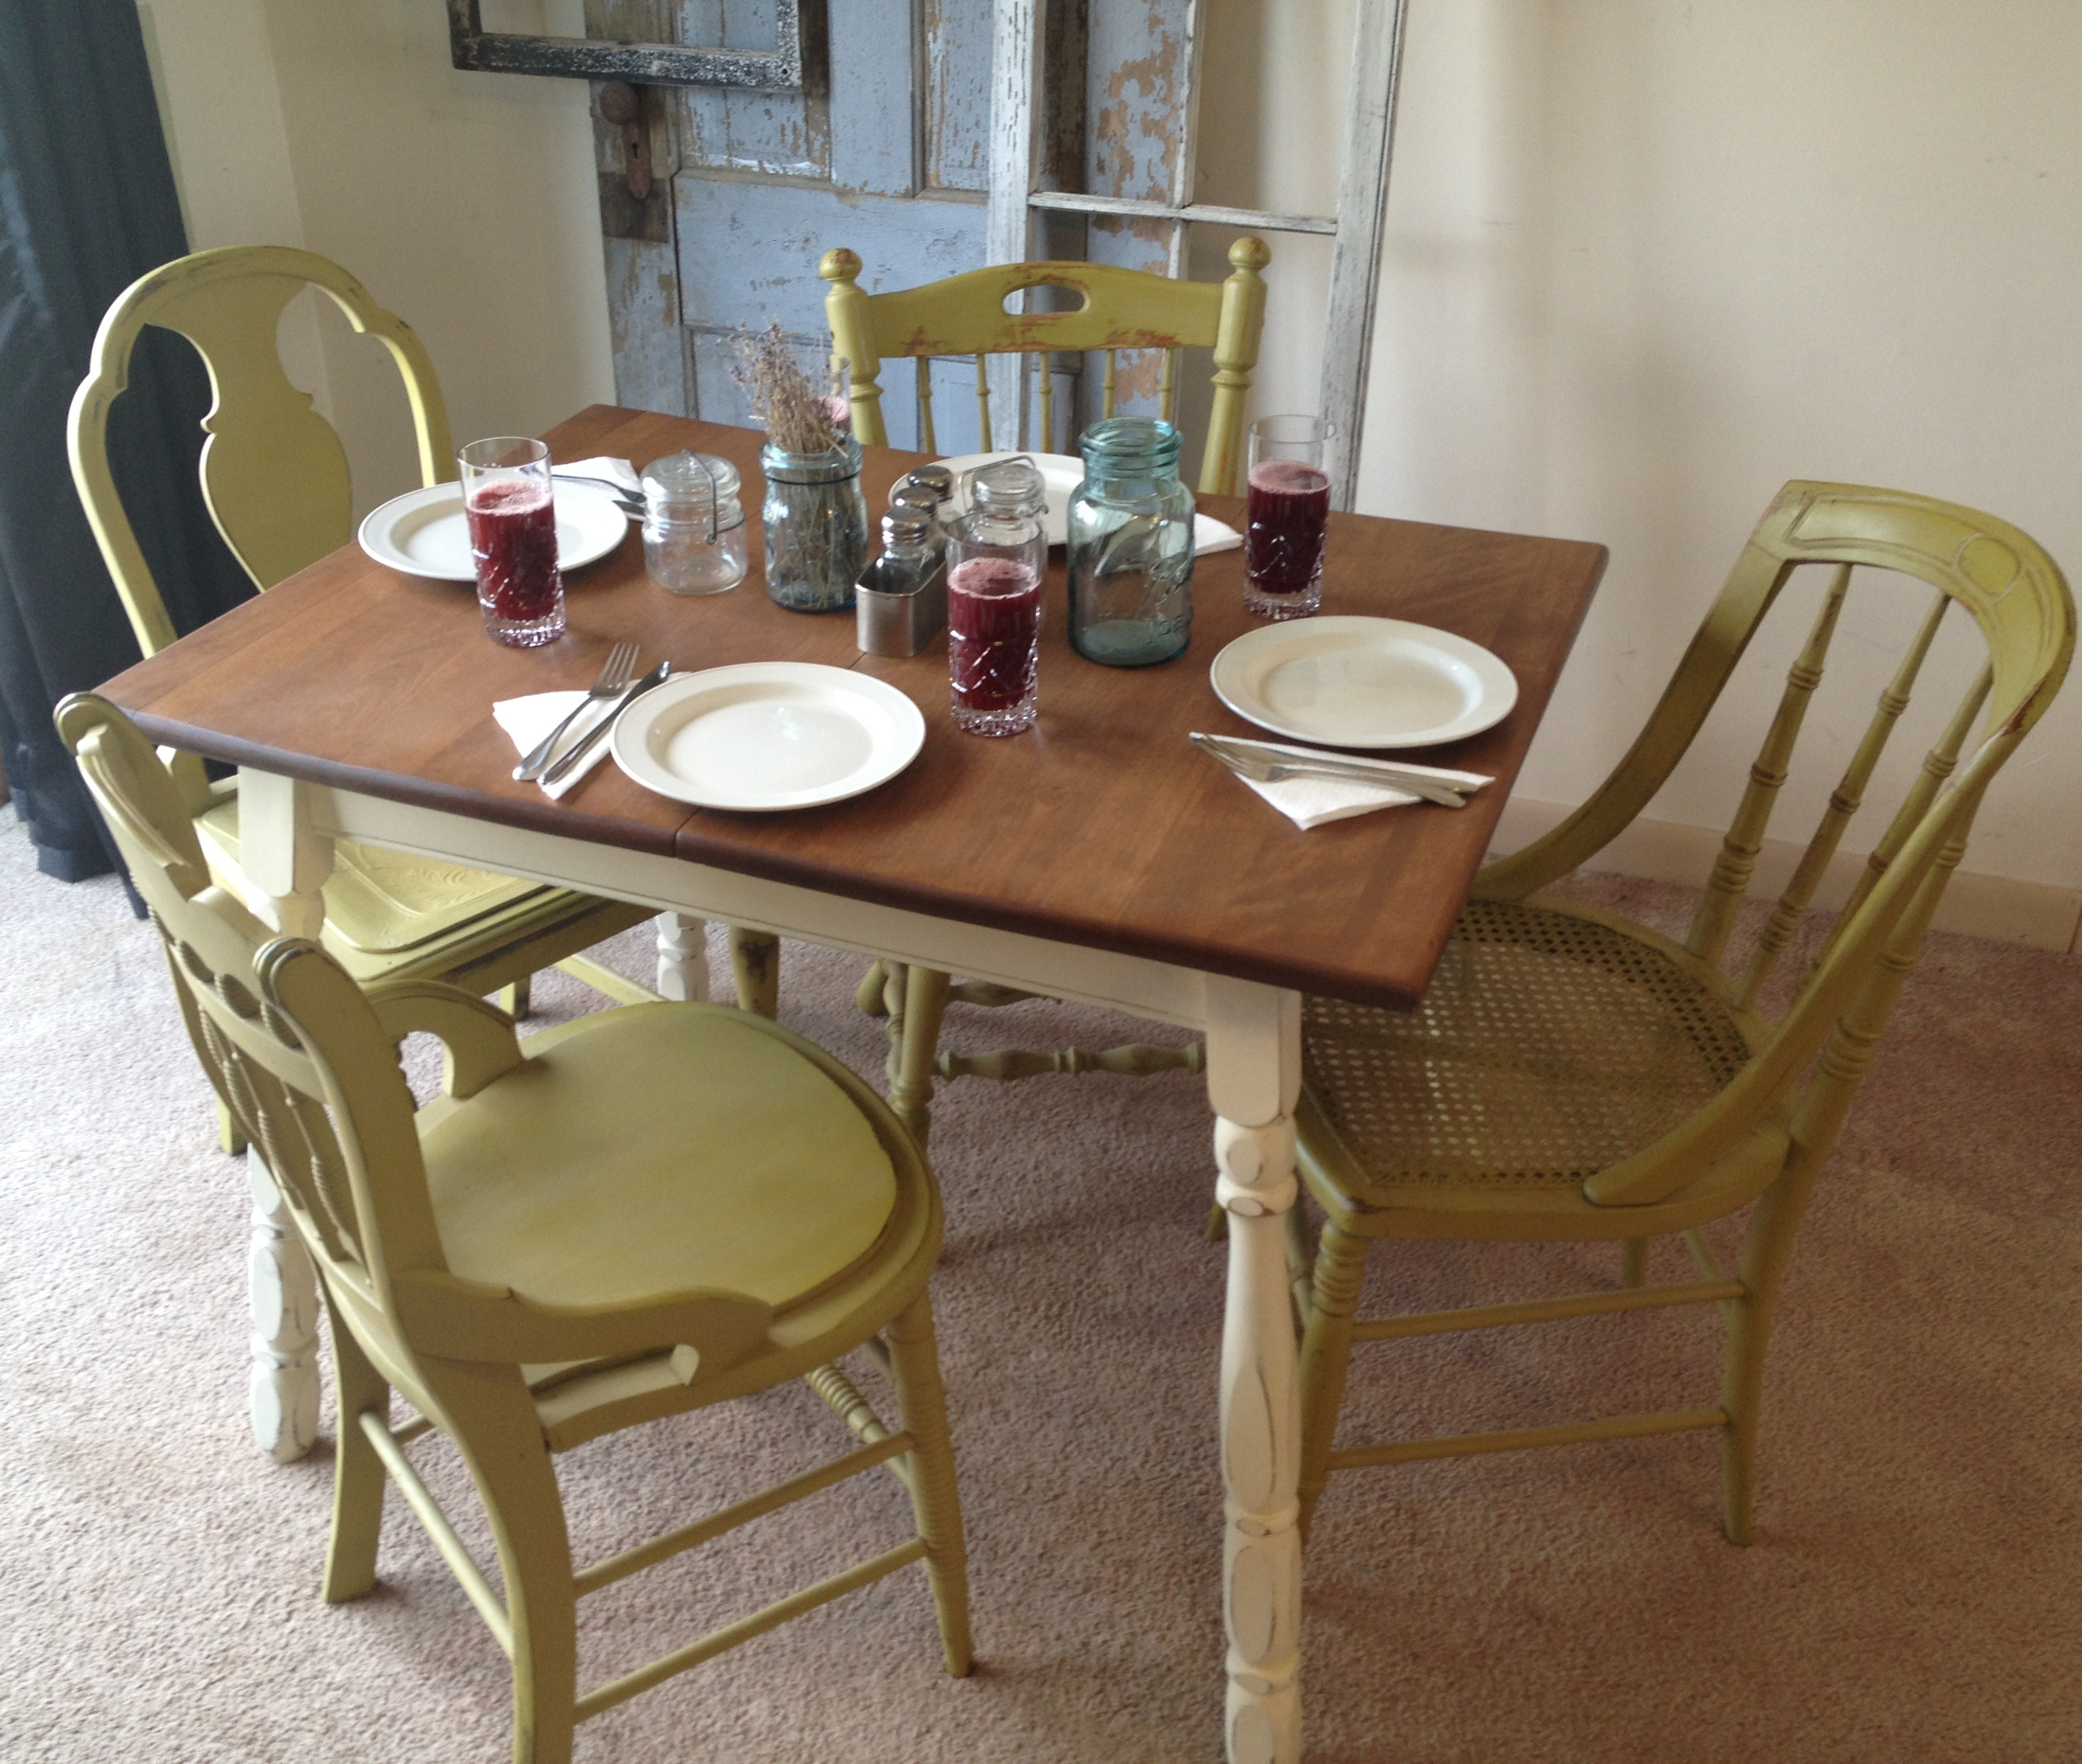 kitchen tables more kitchen tables and more small kitchen table for 2 store for many more dining dinette